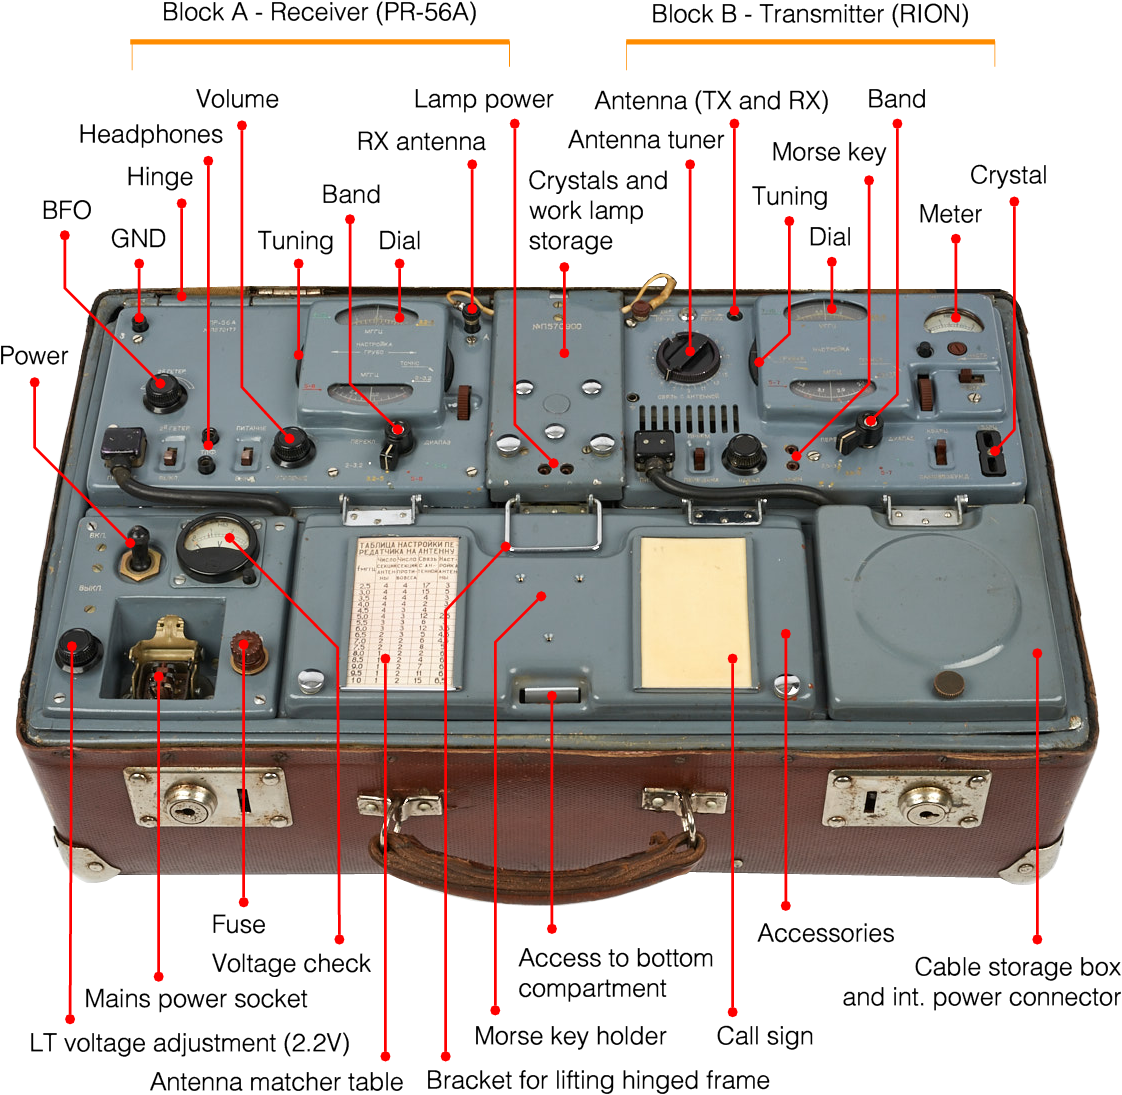 Rion P 57 Meter Fuse Box Holder It Has A For Checking The Internal 15v Lt And 240v Ht Power Rails